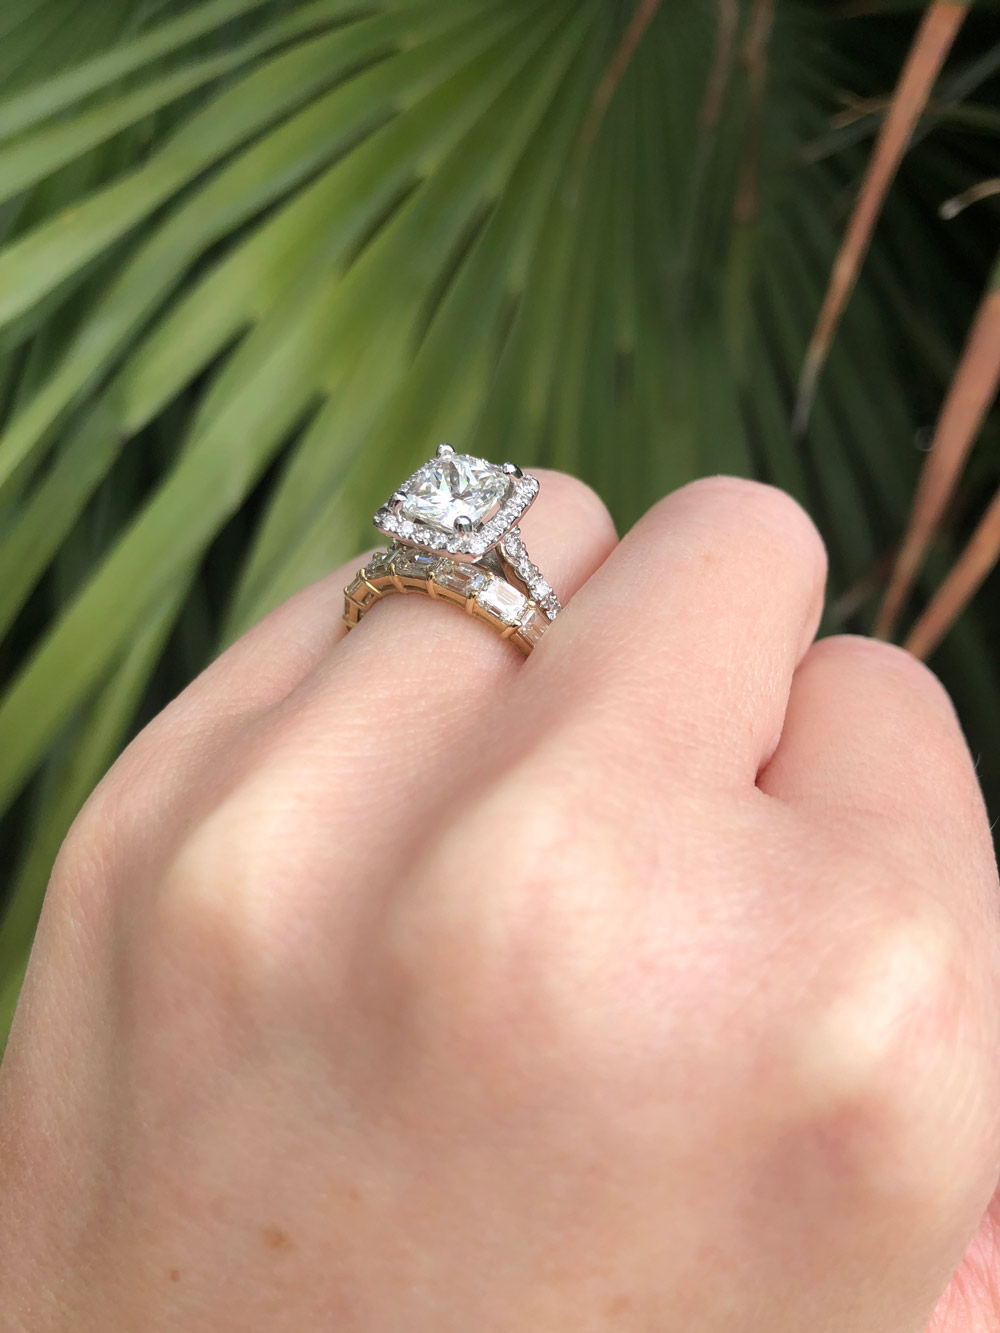 Used Rolex Boca Raton Wedding Band Vs Eternity Ring Advice